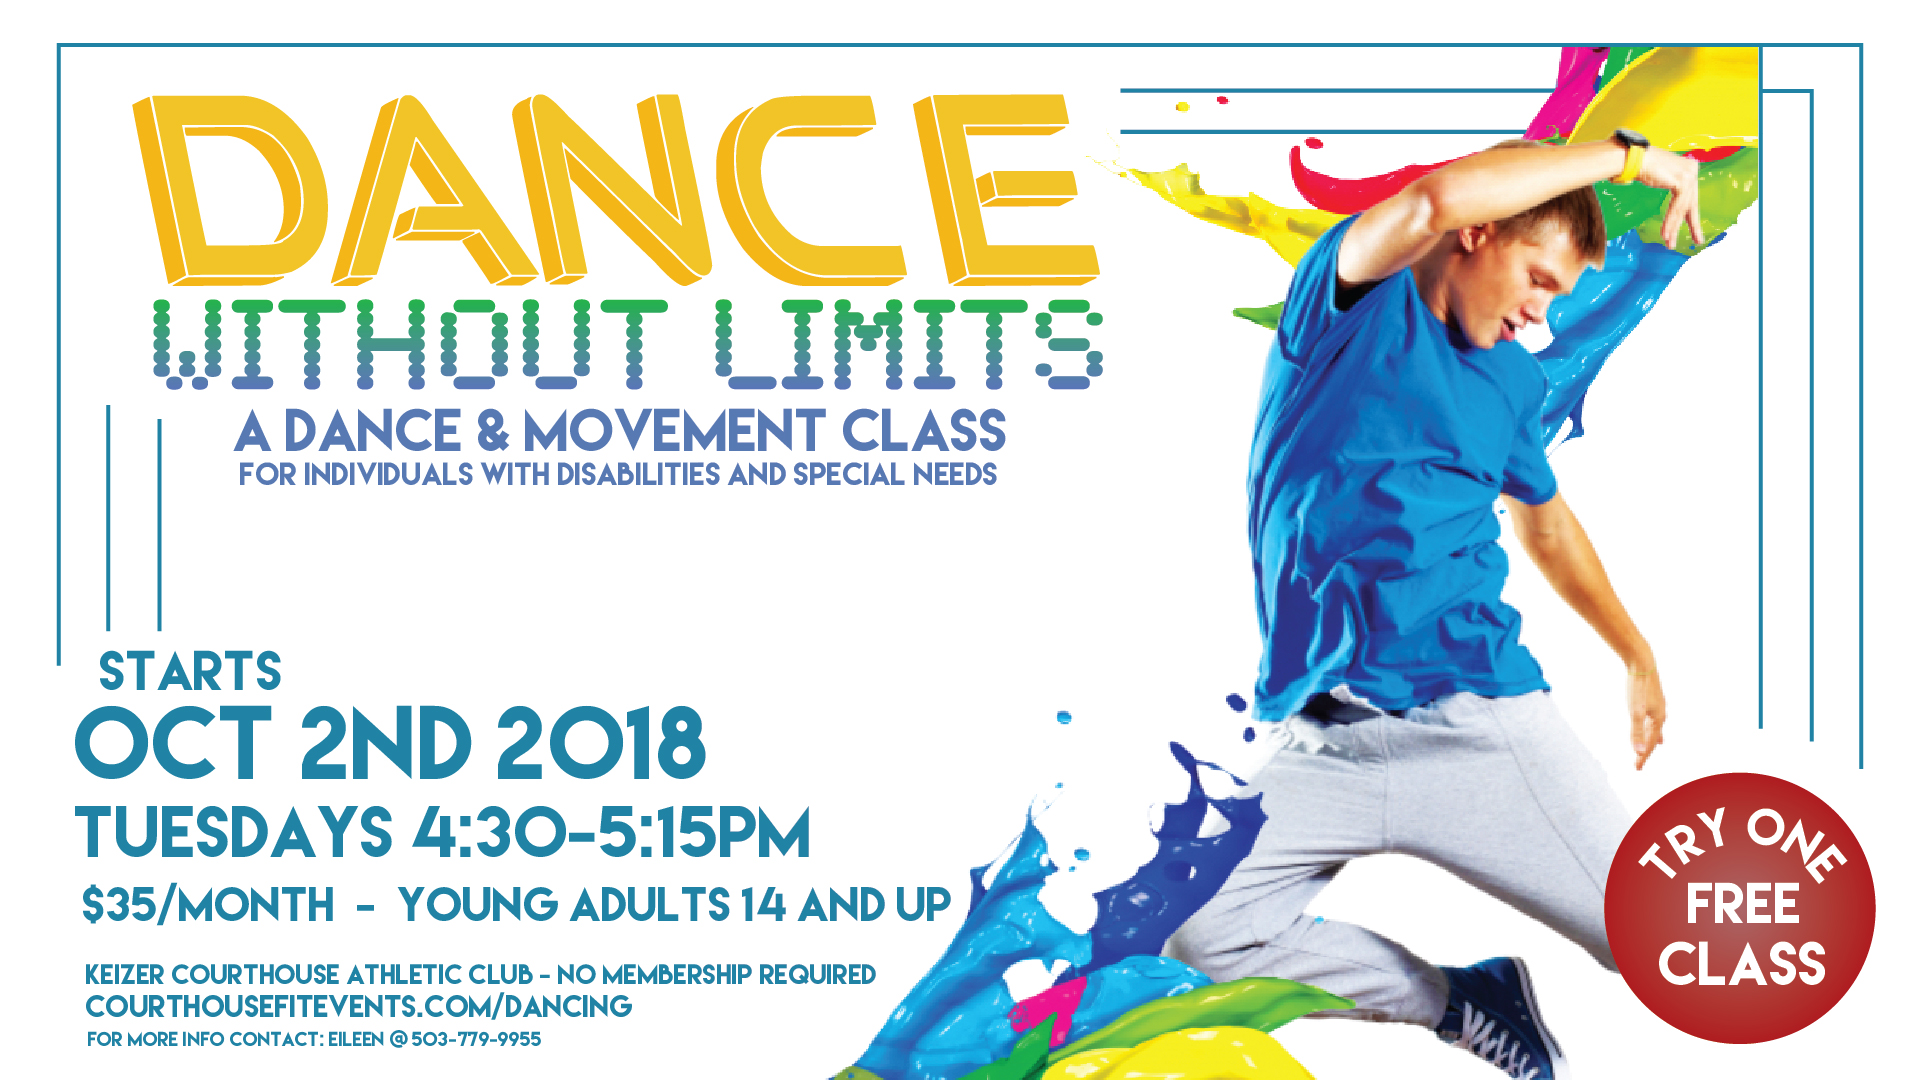 Dance_Without_Limits_Aug_2018_IDS-01.jpg